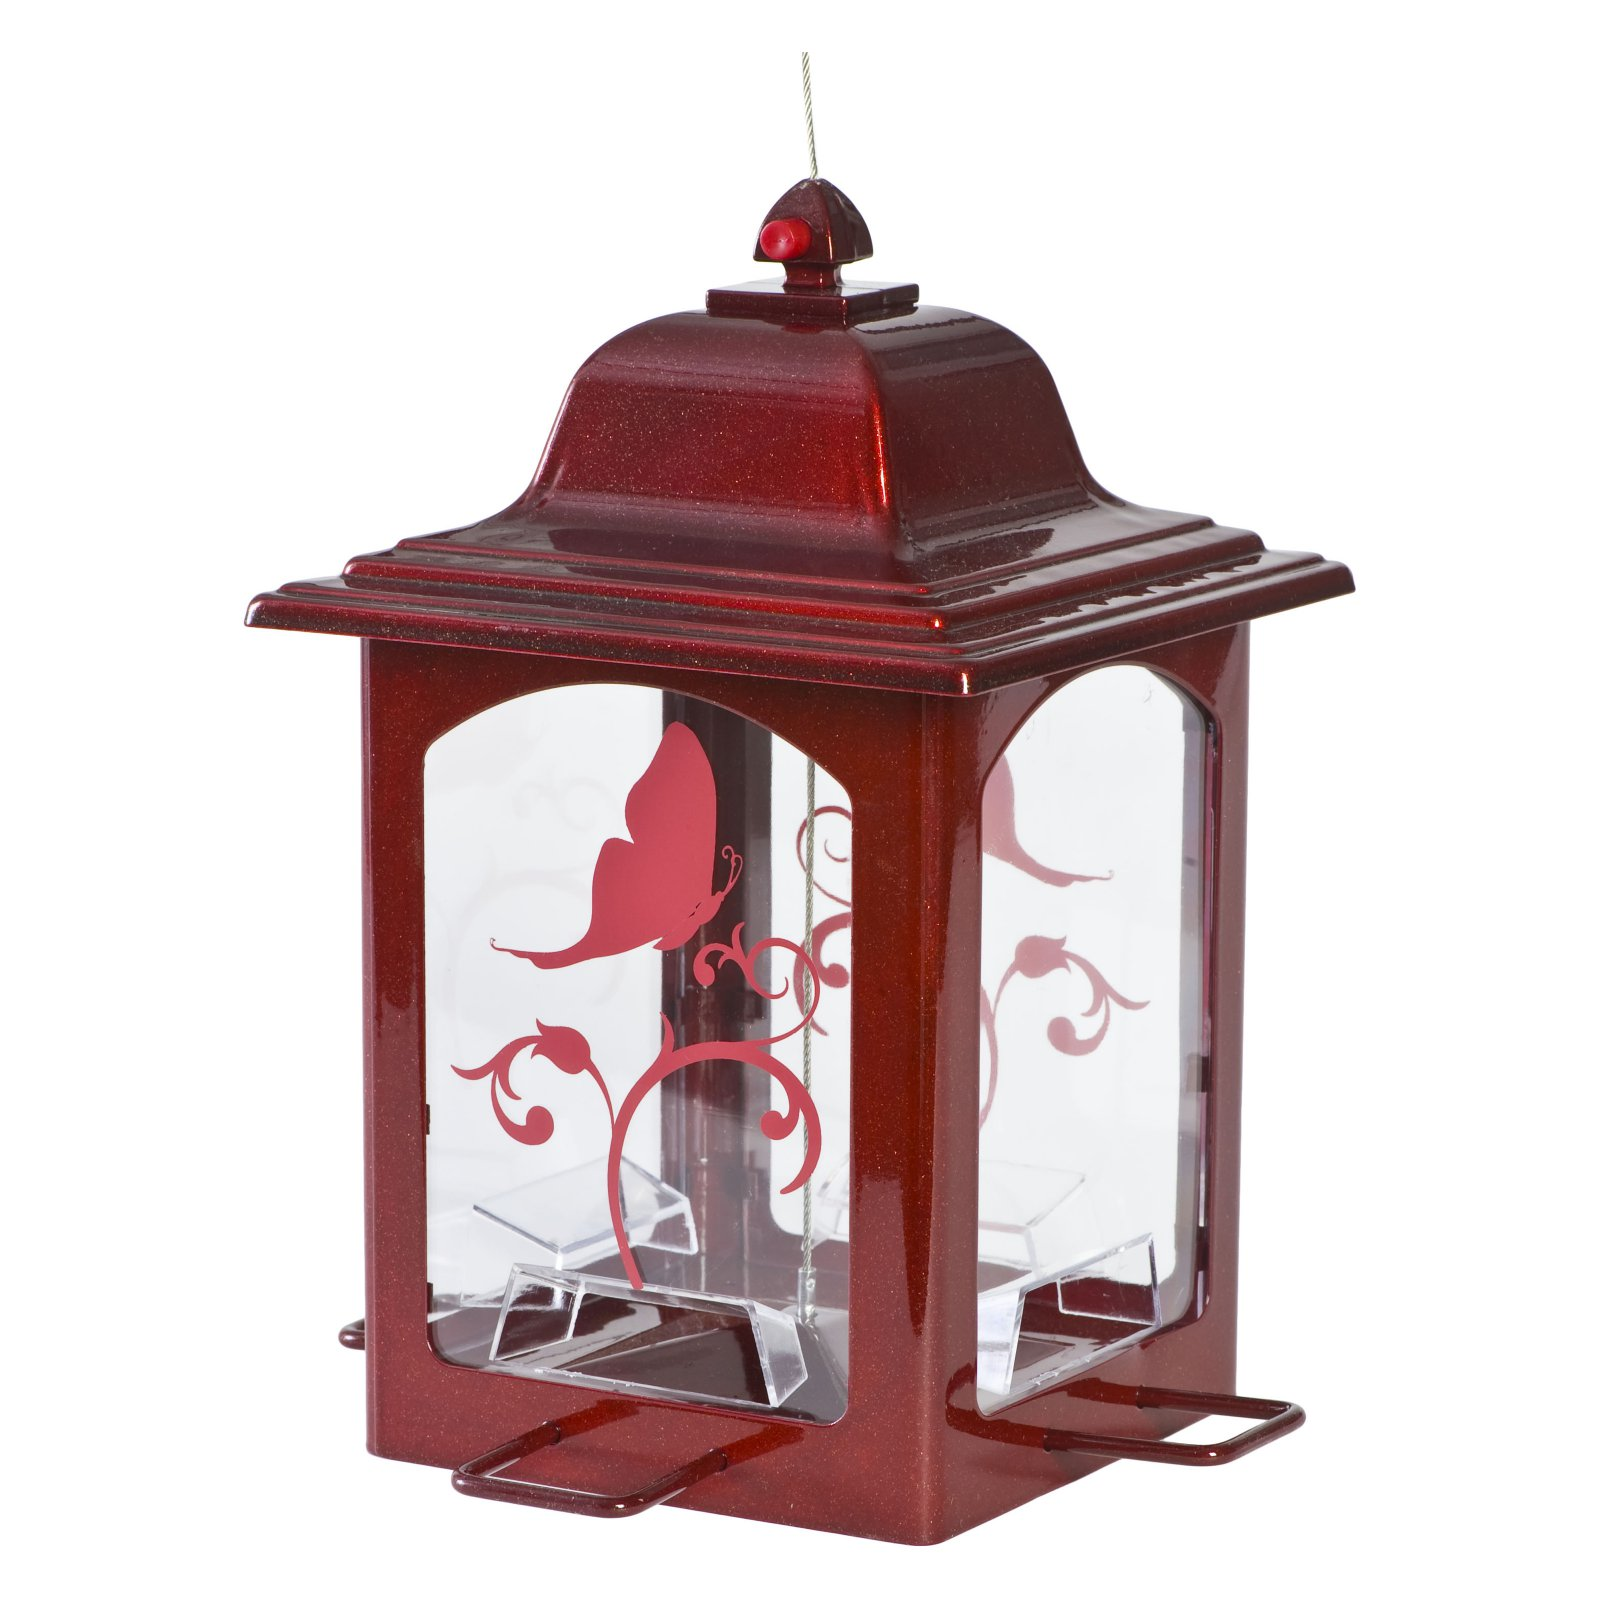 Perky-Pet Red Sparkle Lantern Wild Birdfeeder by Perky-Pet